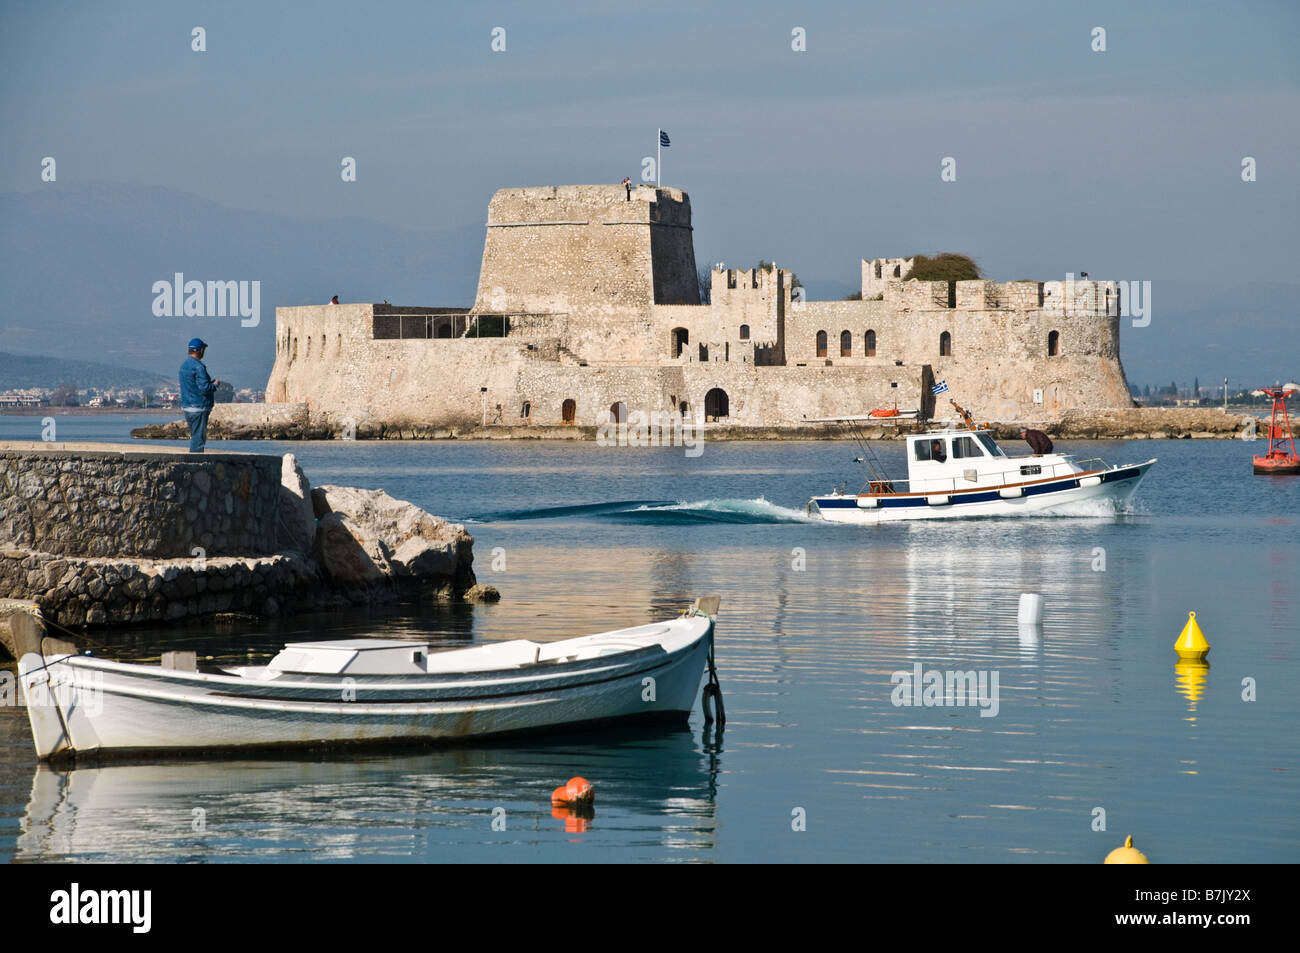 The harbour at Nafplio with the Bourtzi island and fort in the background Argolid Peloponnese Greece Stock Photo